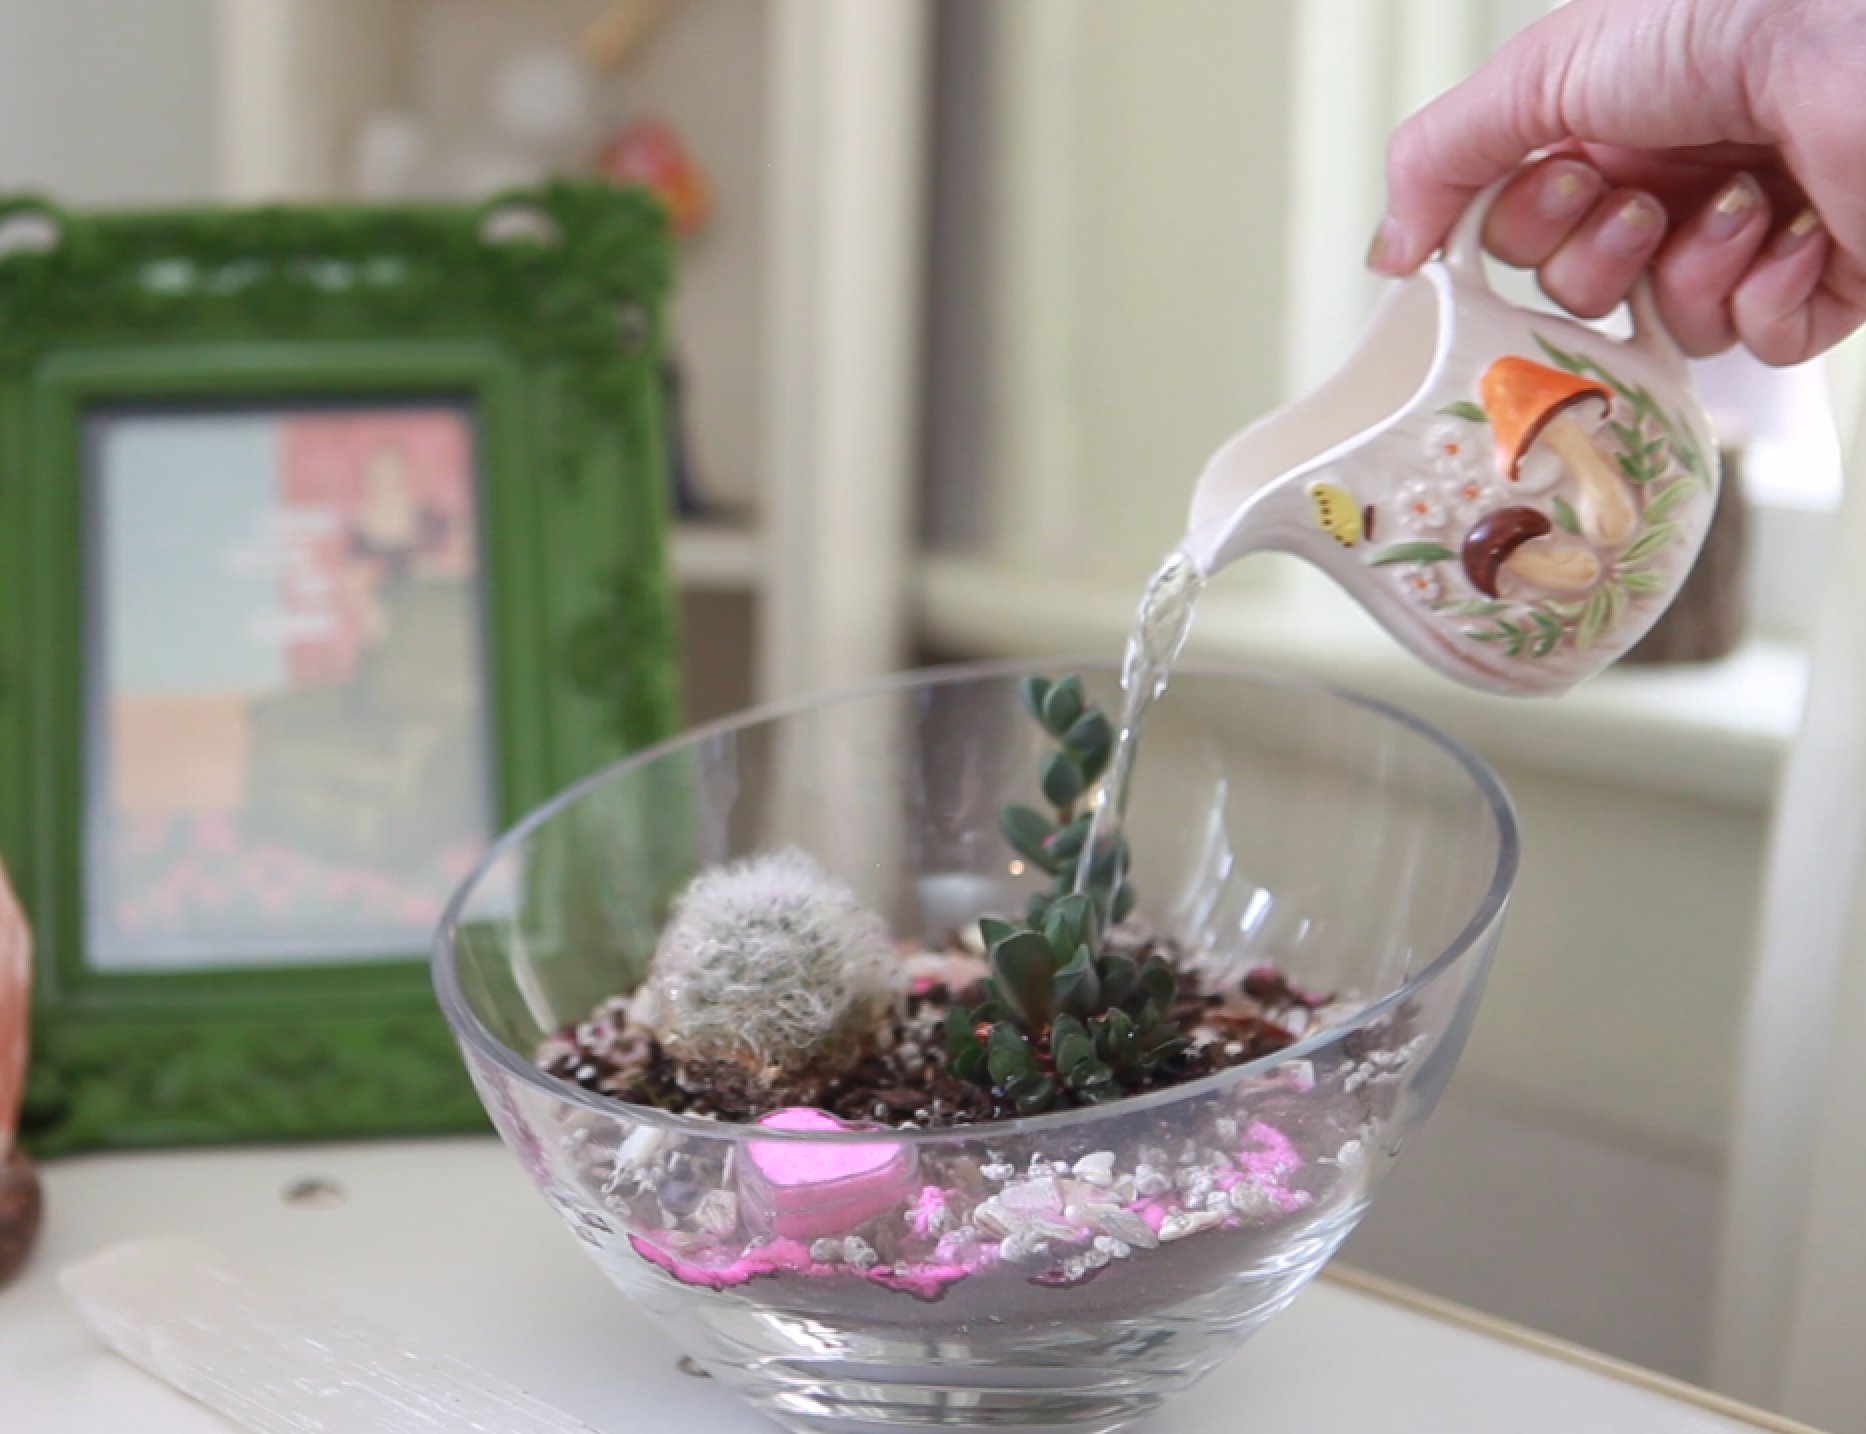 How To Make A Terrarium With Cacti And Succulents